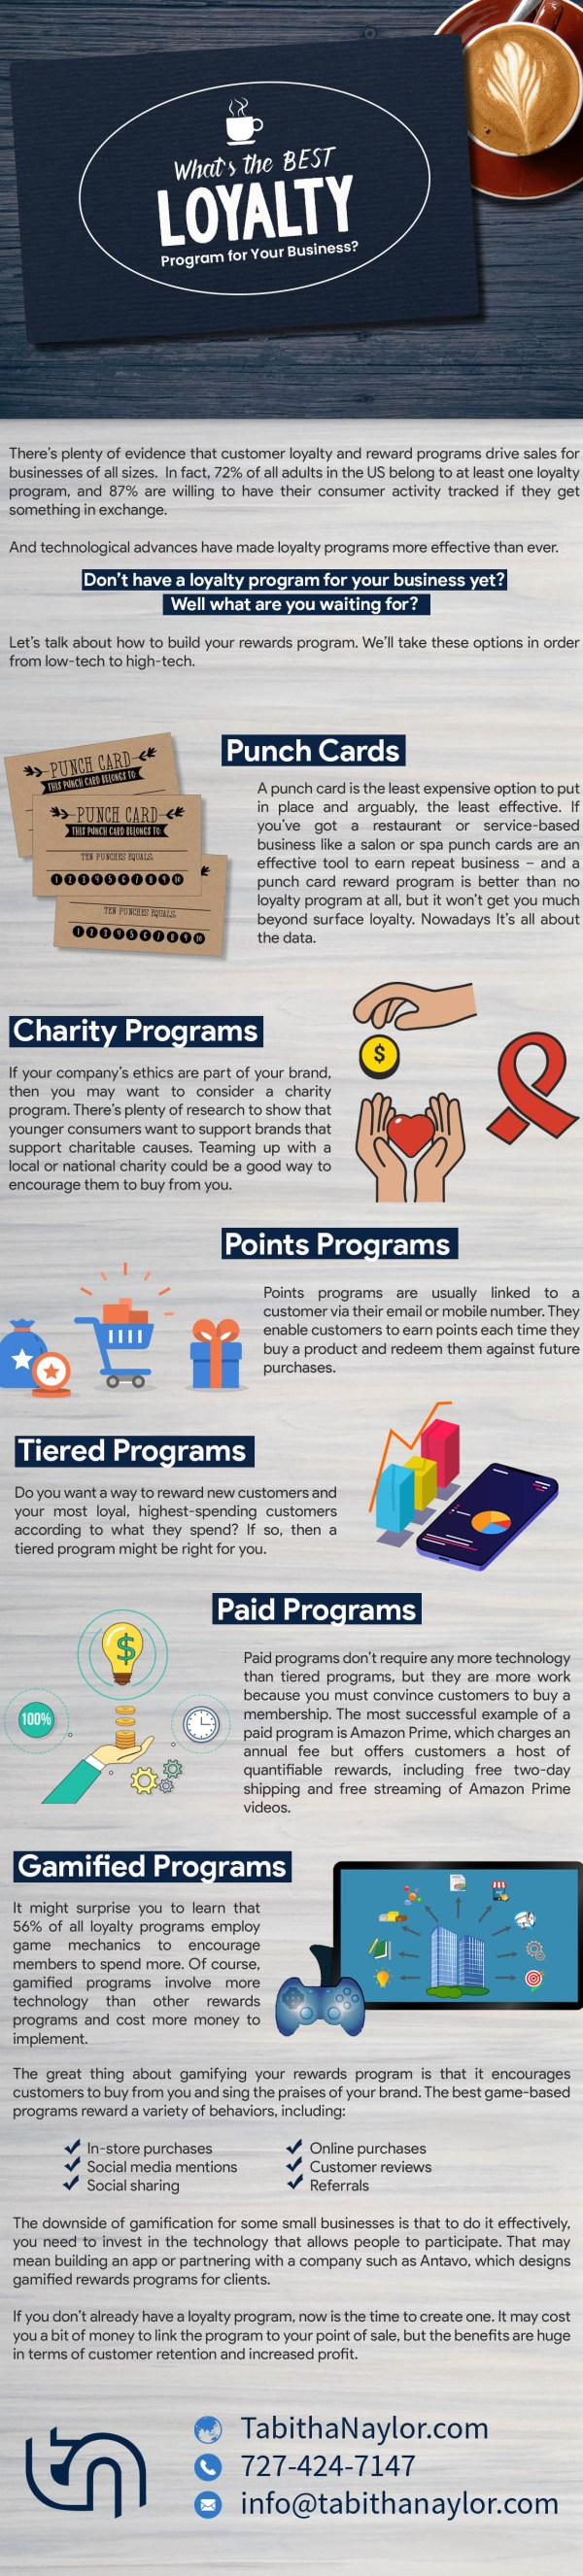 What's-the-BEST-Loyalty-Program-for-Your-Business-550x2292